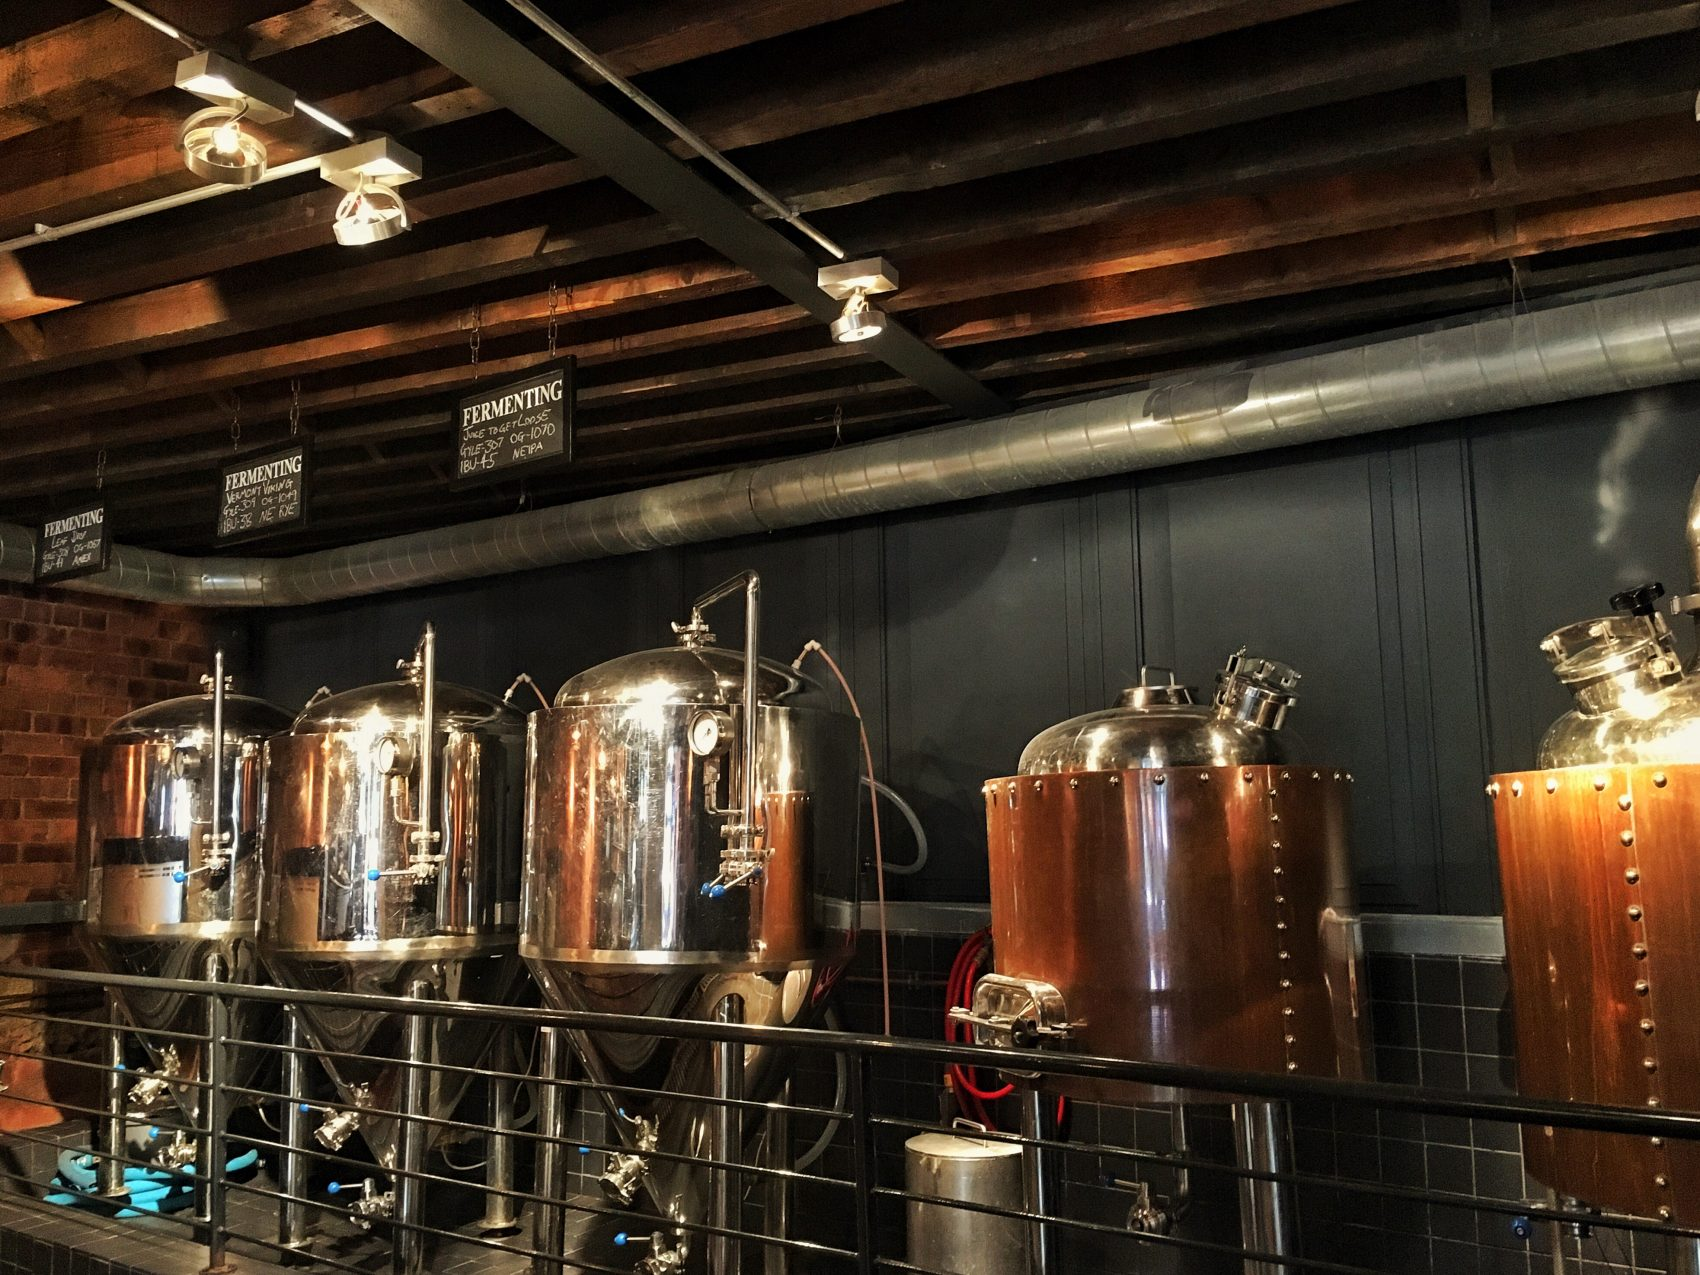 Fermenting and Conditioning Tanks, The Bridge Tavern, Newcastle